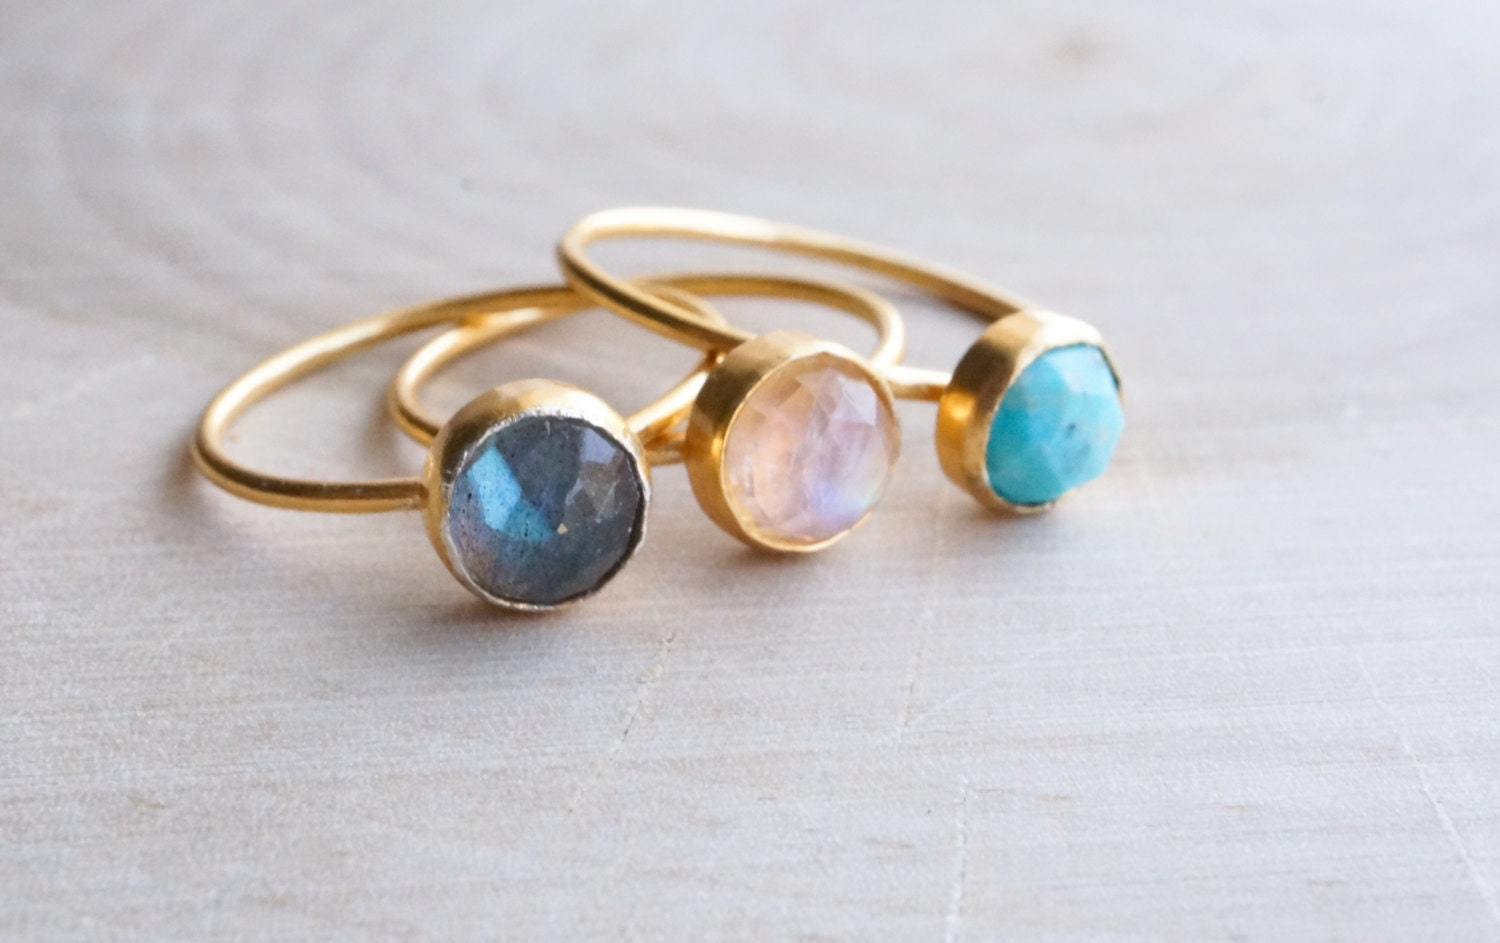 6mm gemstone ring gold ring stackable rings by lilpengee